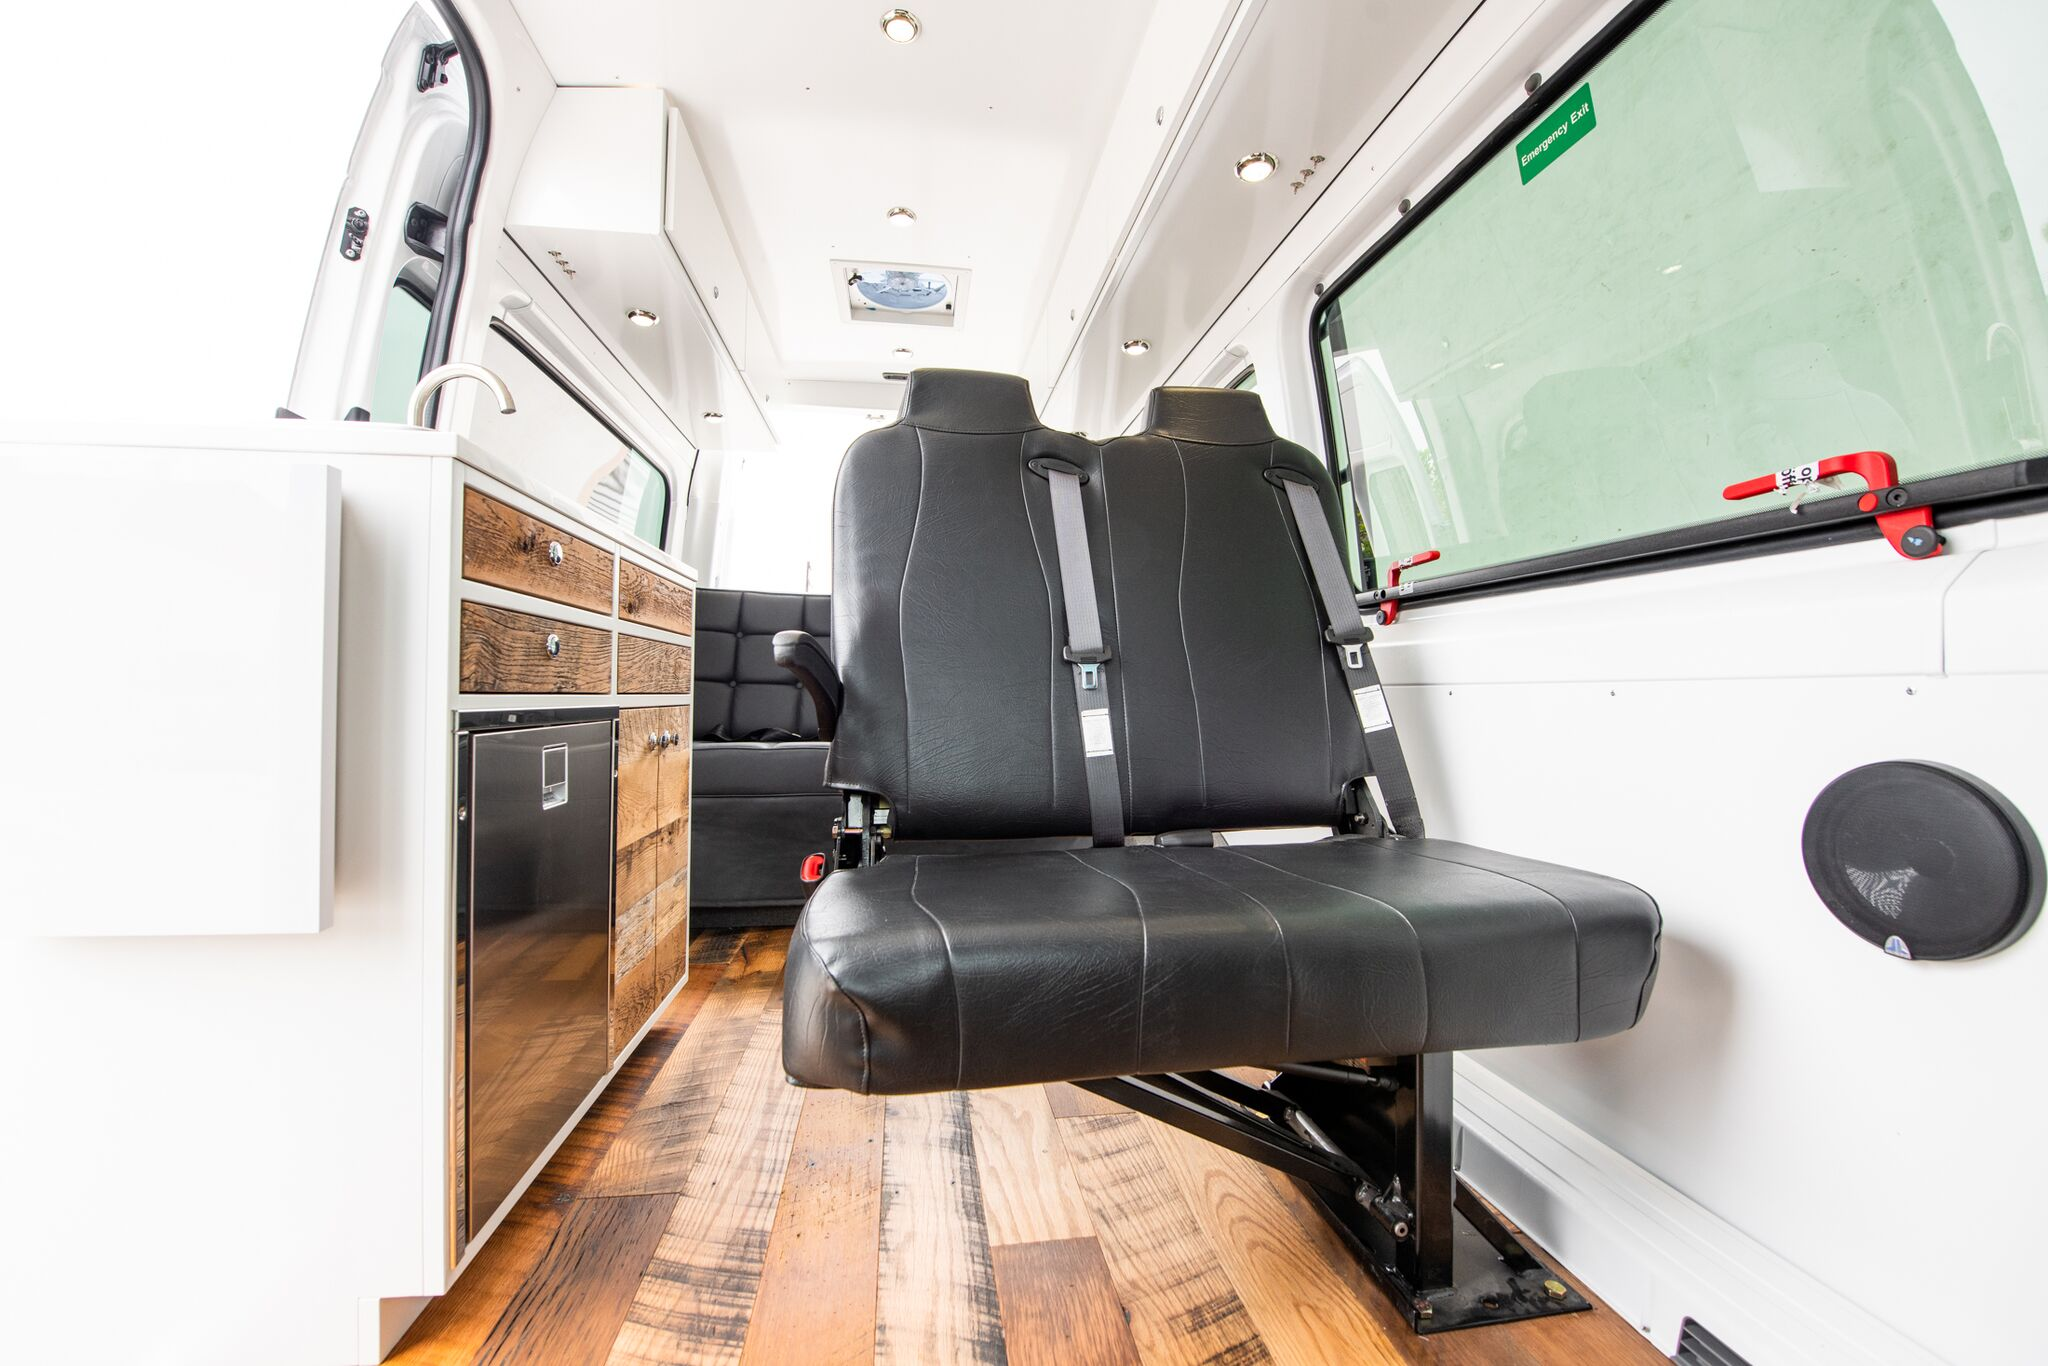 Two Passenger Foldaway Seat - Can be folded into the wall when not in use to quickly free up space in your van. For Mercedes Sprinter®, Dodge Pro-Master® and Ford Transit® vans.